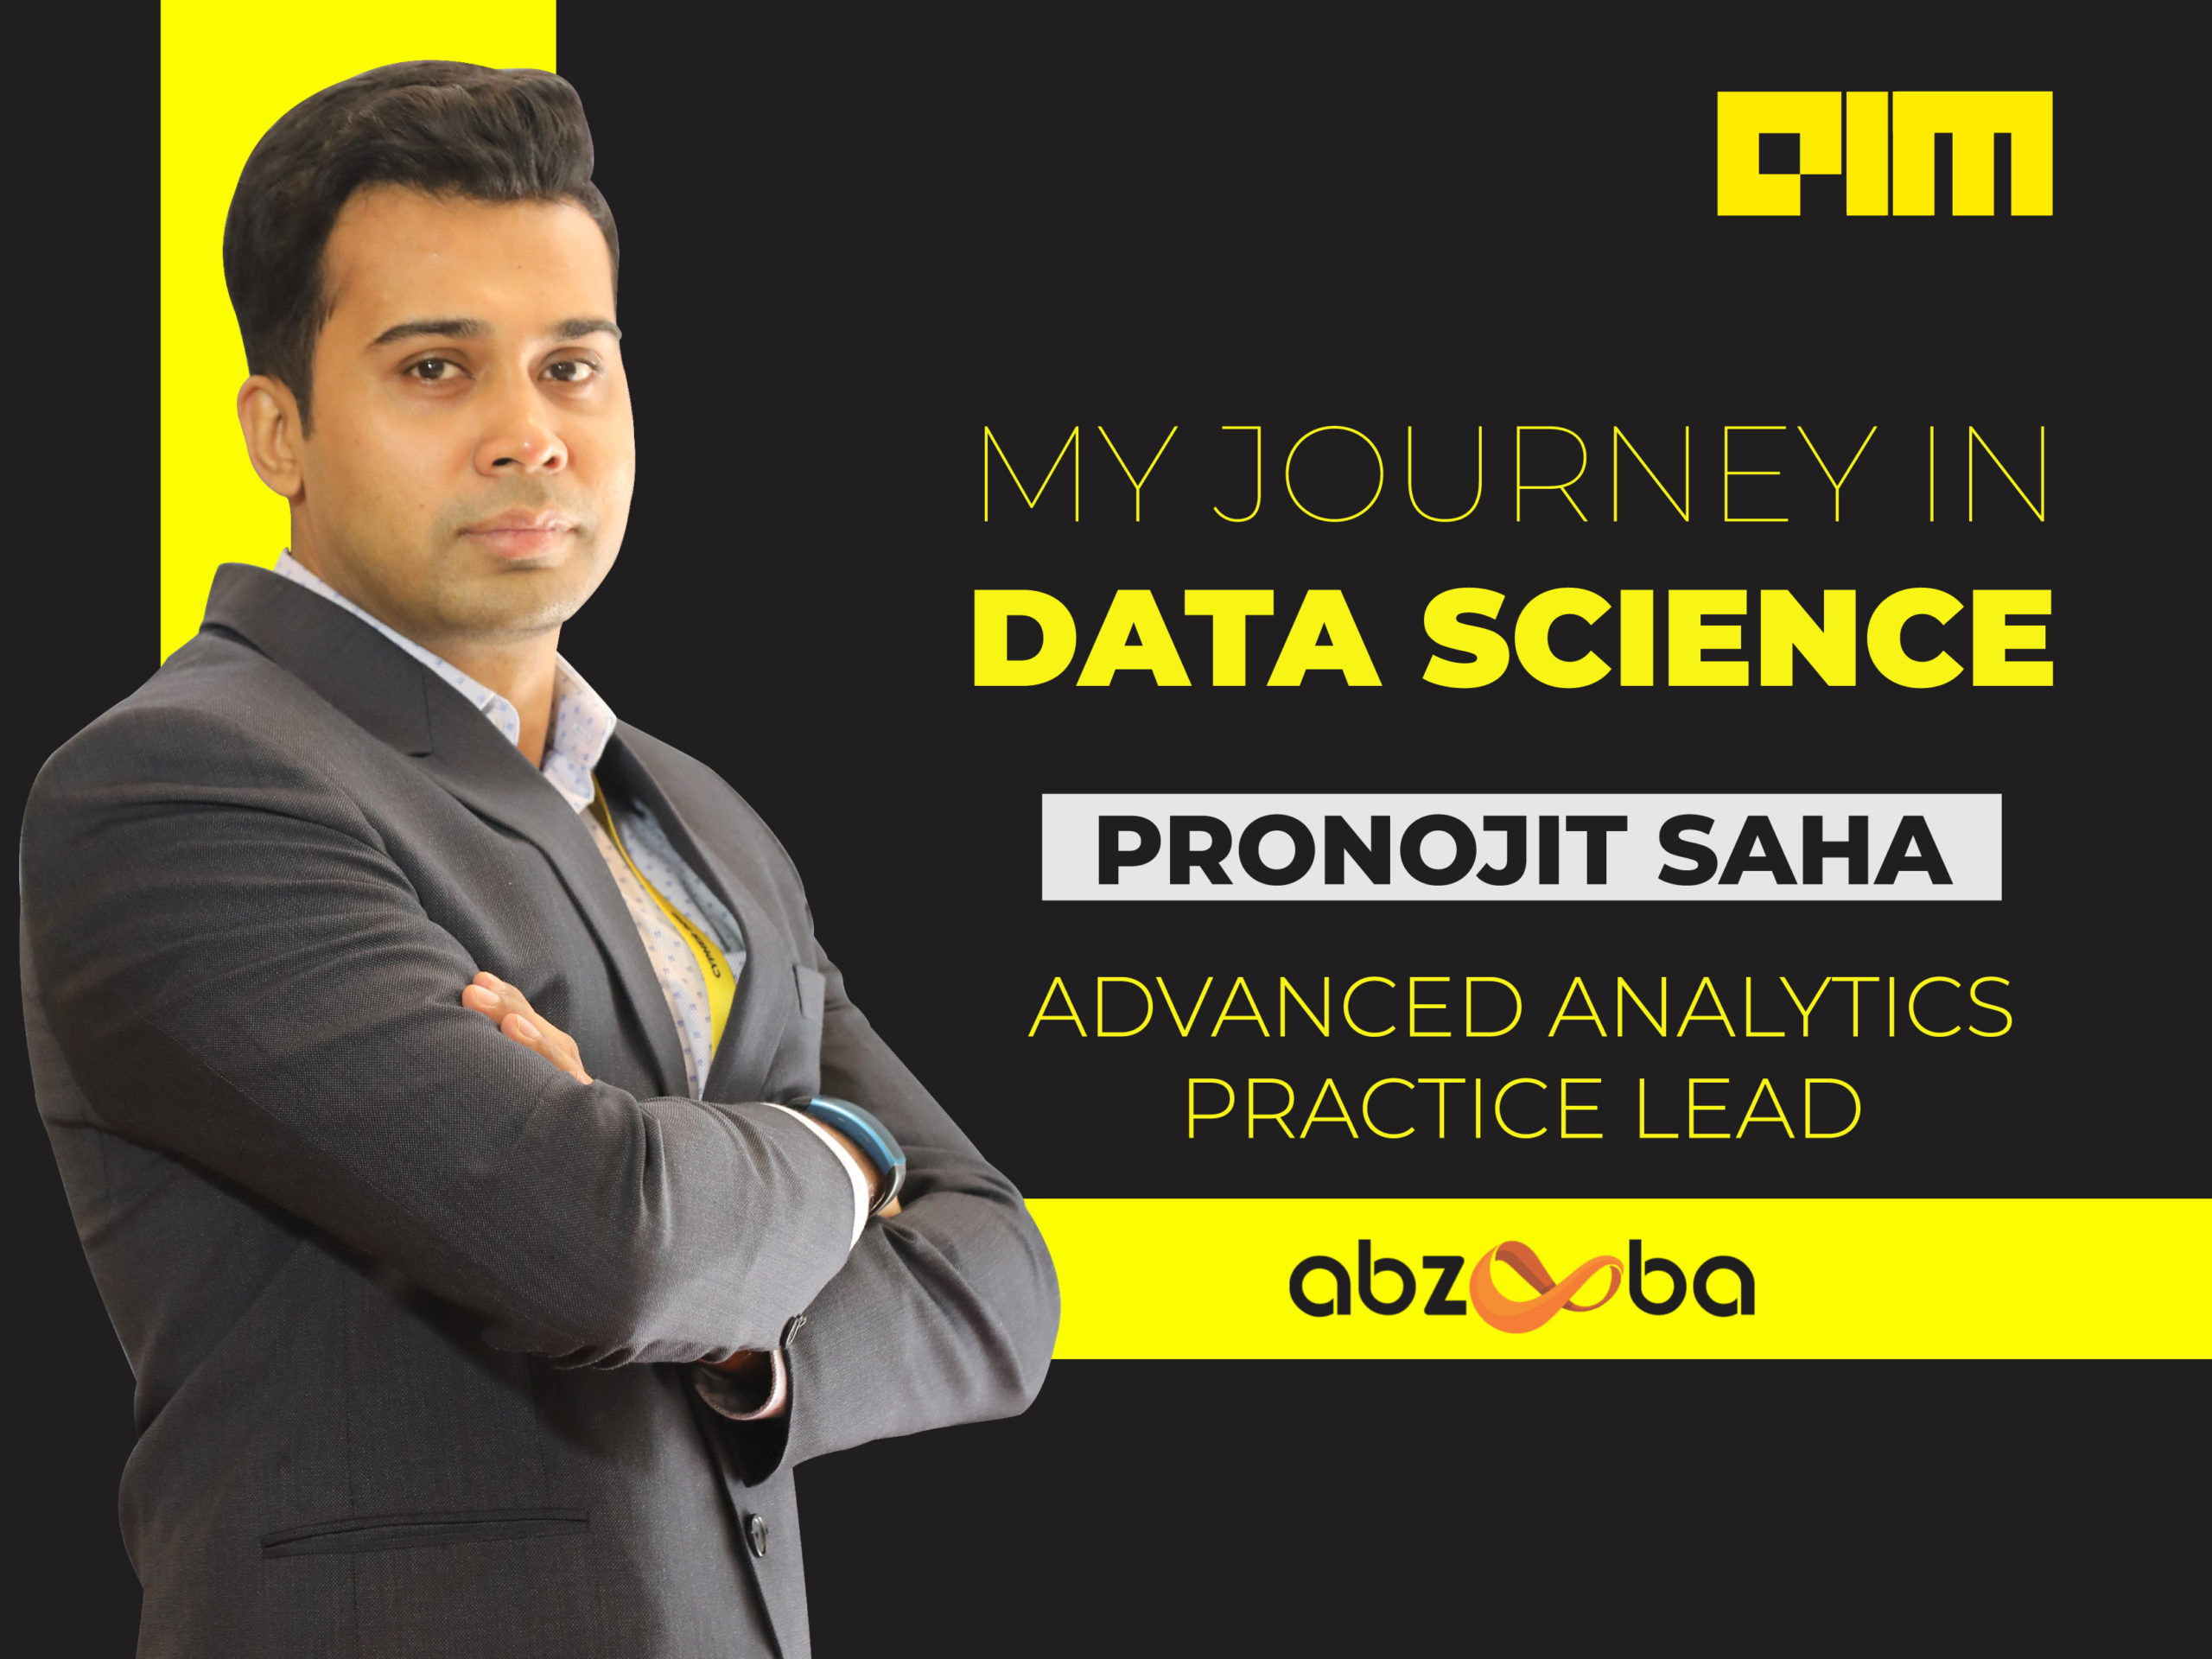 Pronojit Abzooba Data Scientist